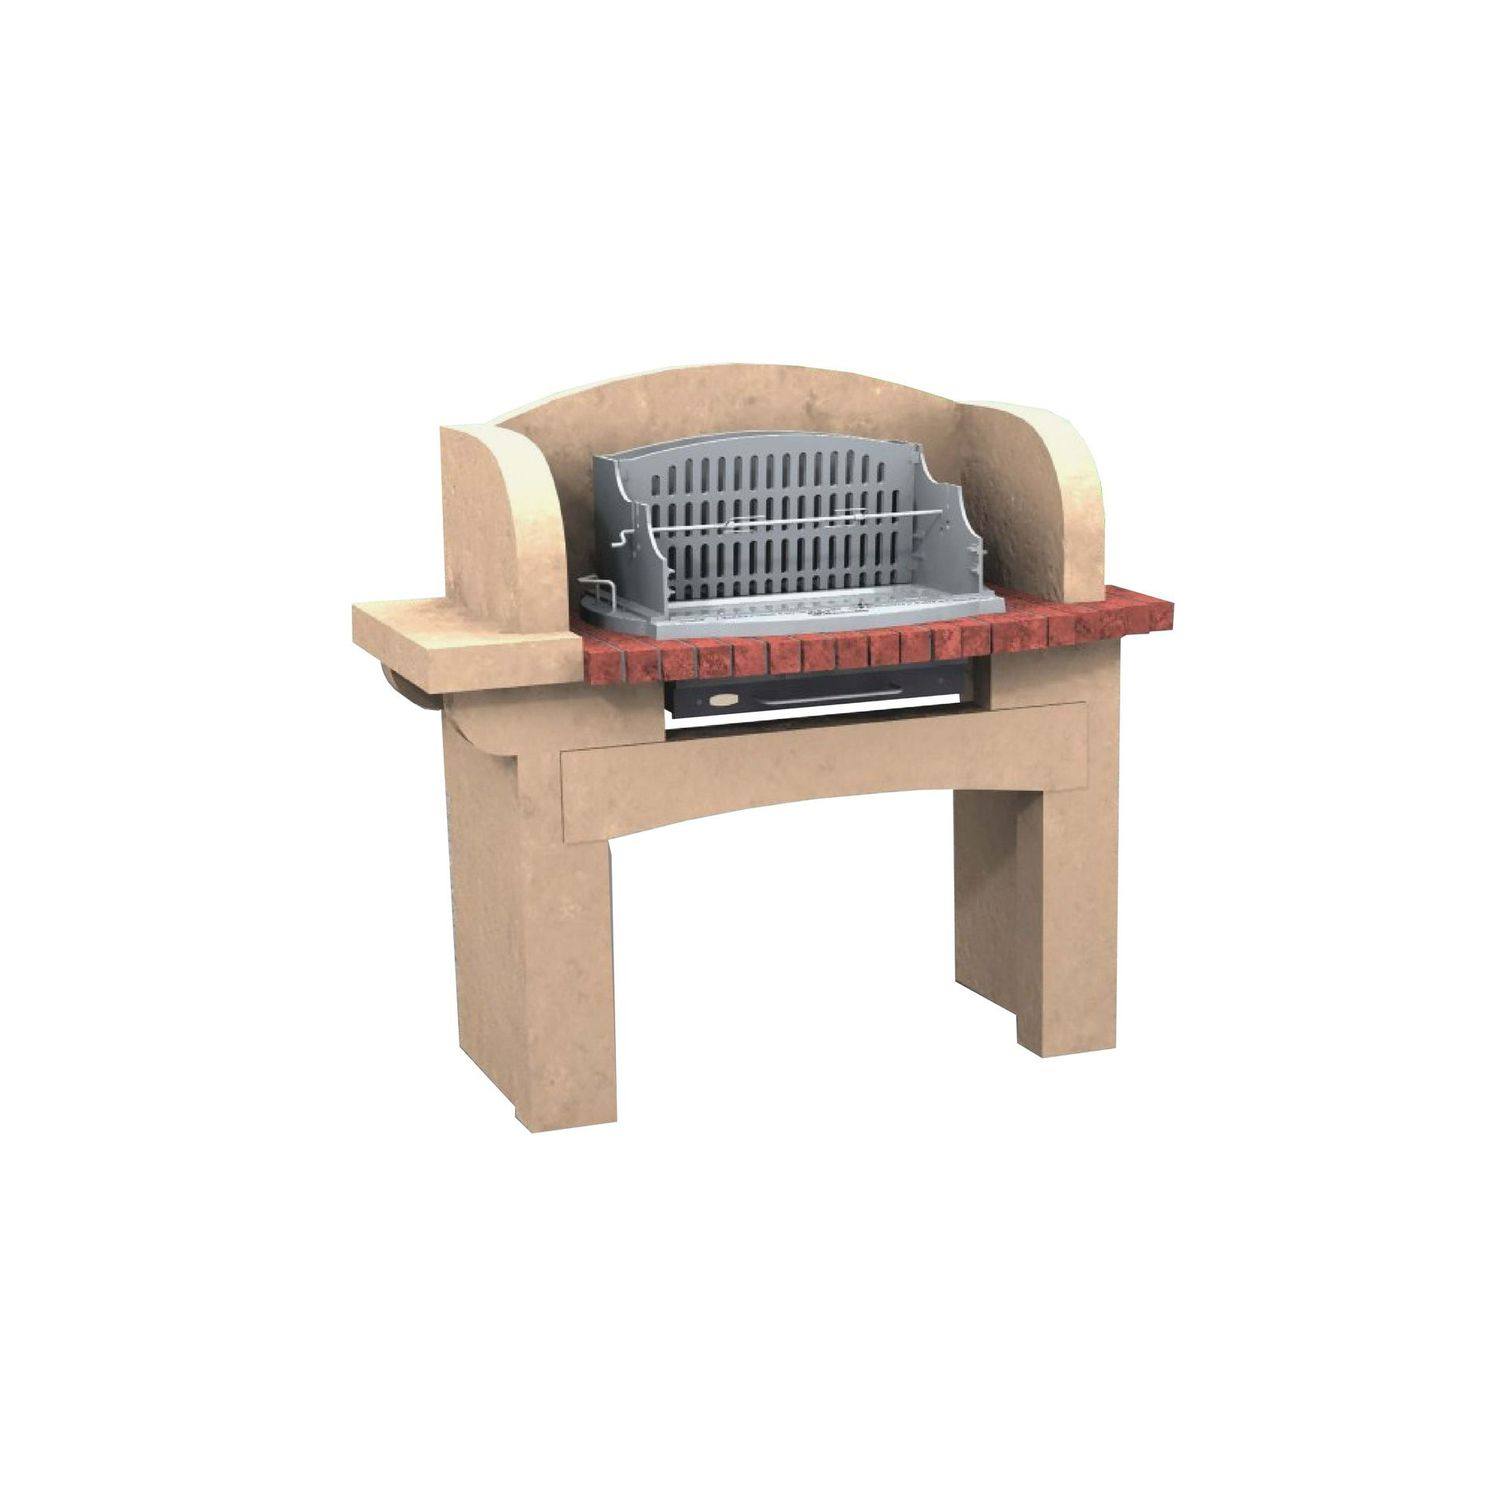 Wood Burning Barbecue Chasselas Cheminées De Chazelles Fixed Concrete Stone